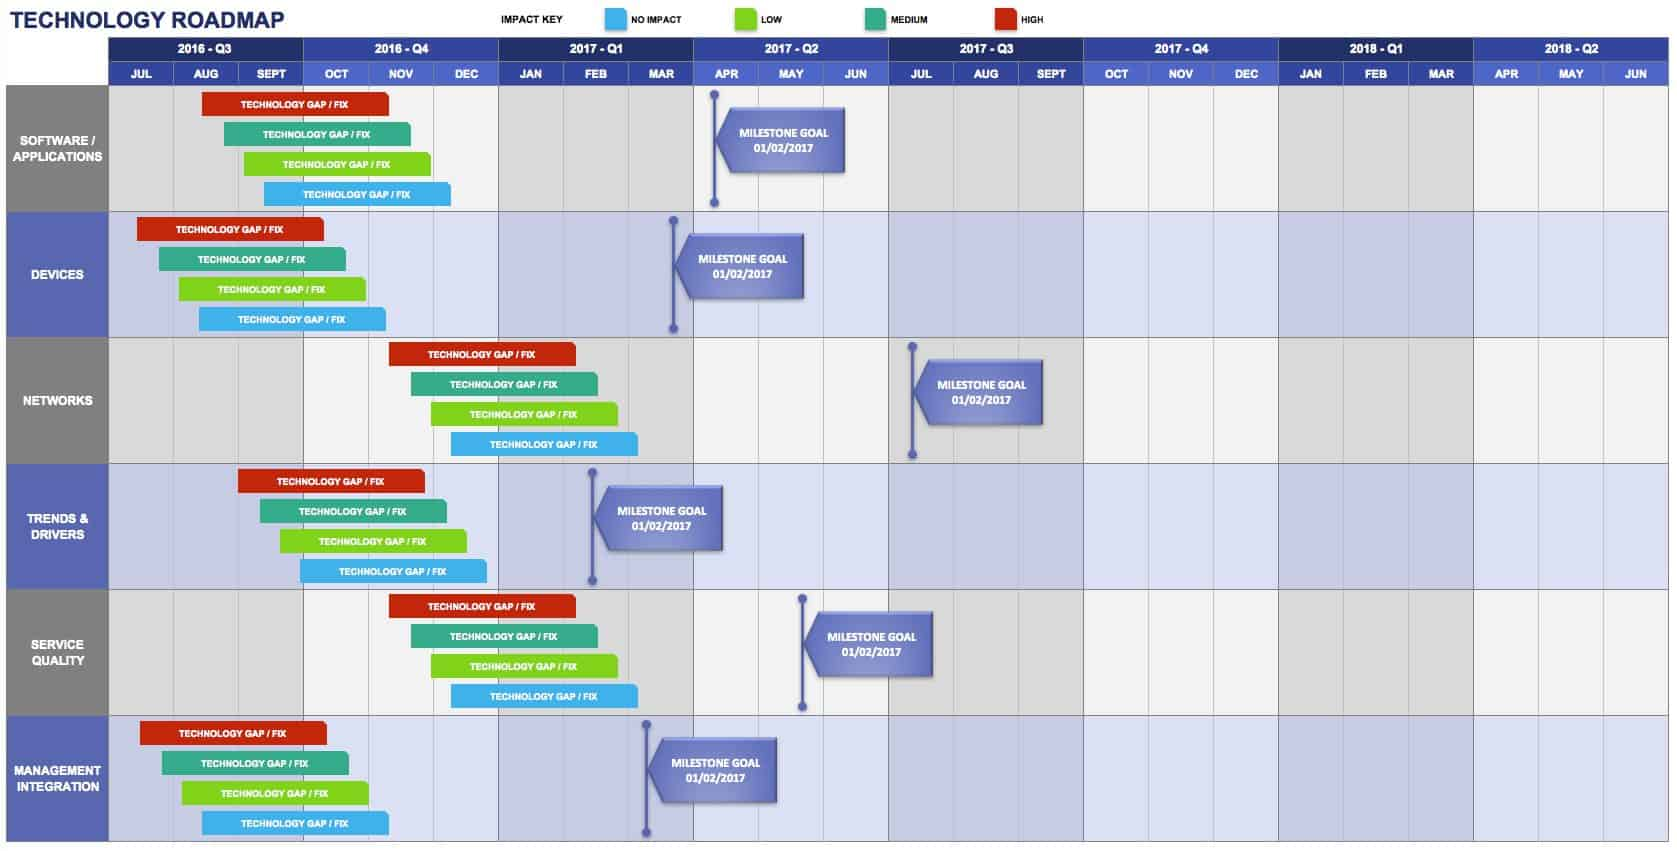 Free Product Roadmap Templates Smartsheet - Roadmap template excel